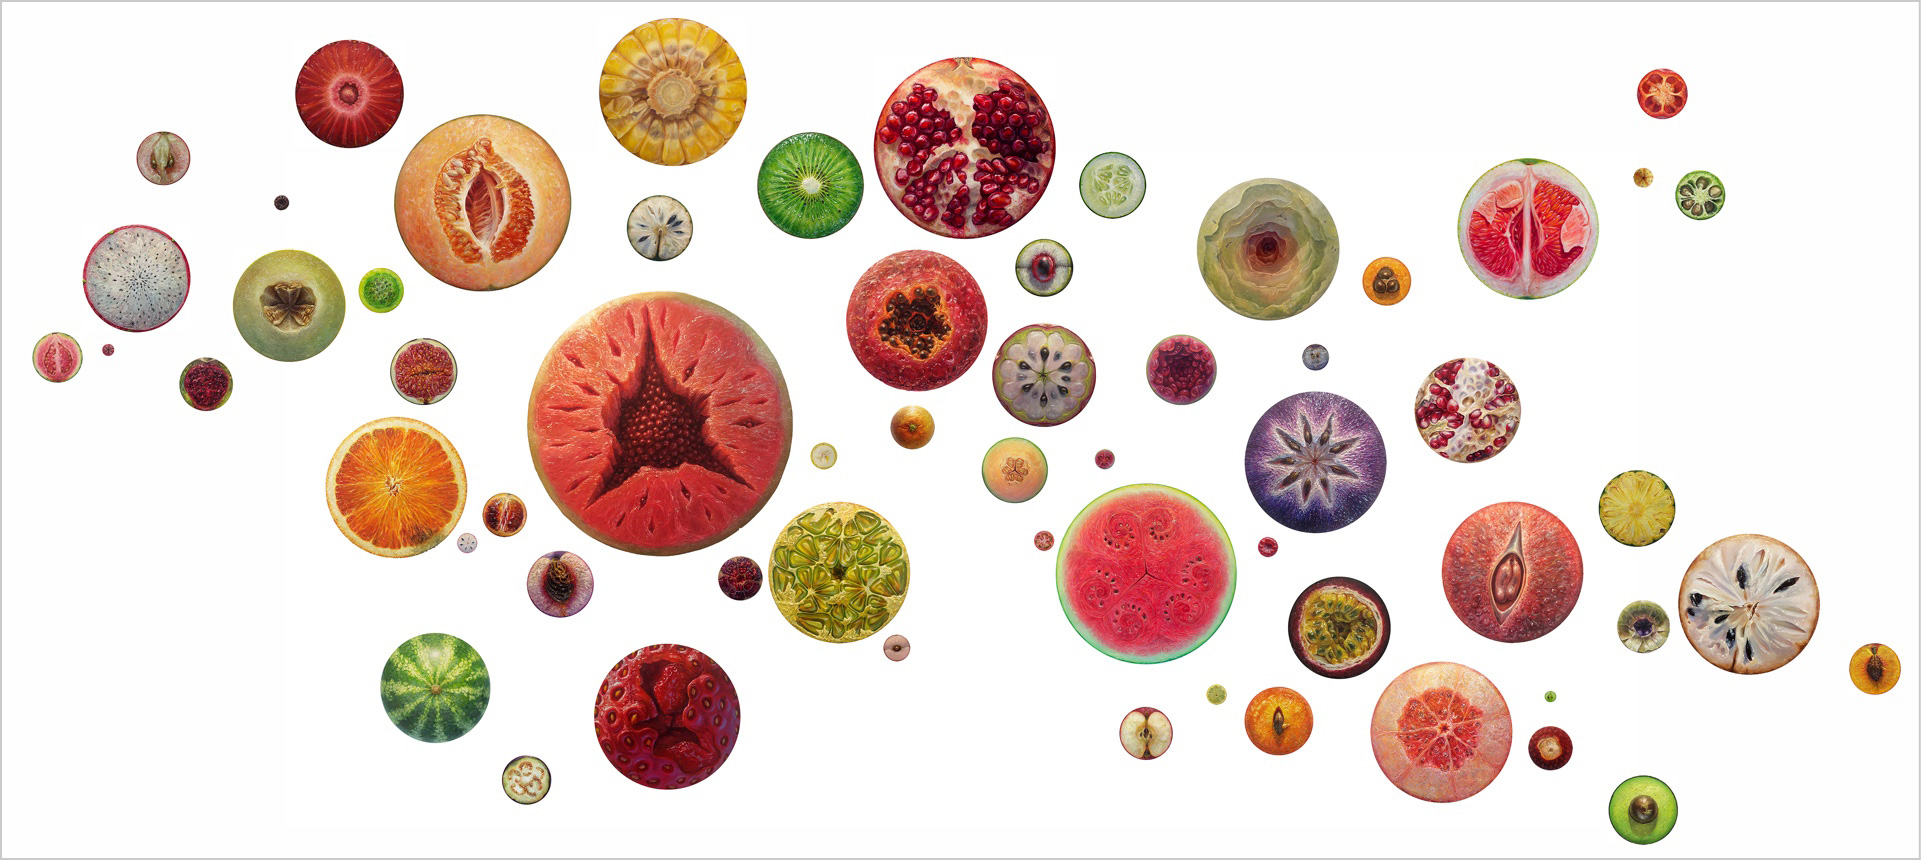 Picture of several portraits of individual fruit cross-sections of various sizes arranged in an installation.